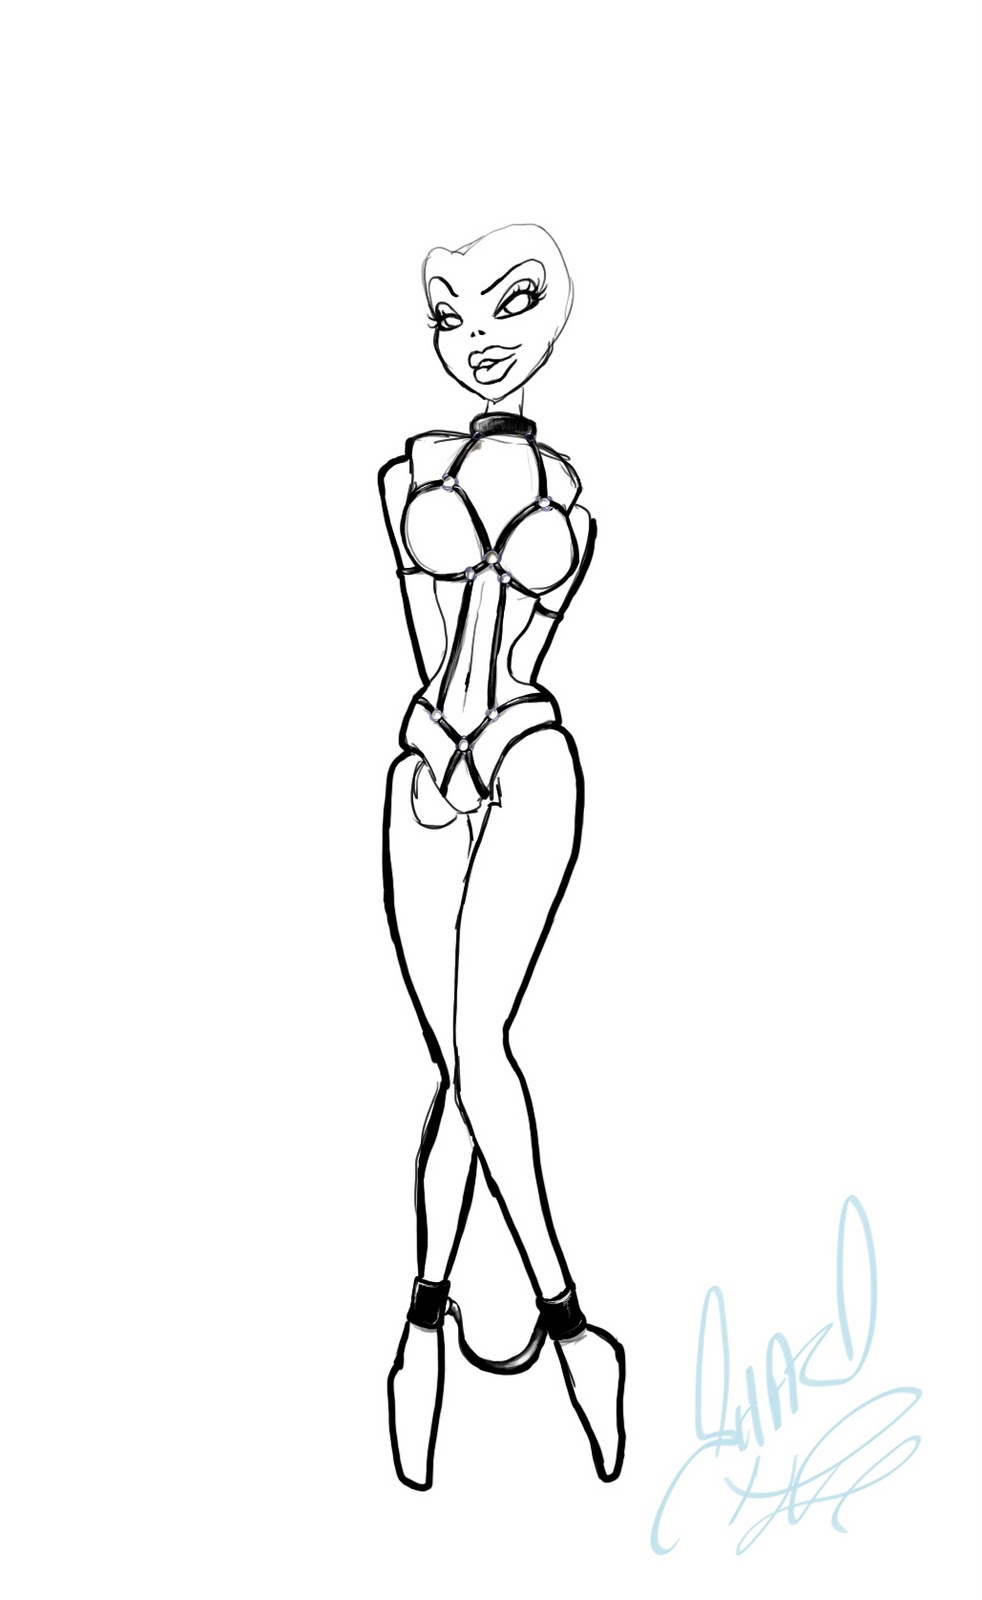 barbie outline drawingBarbie Outline